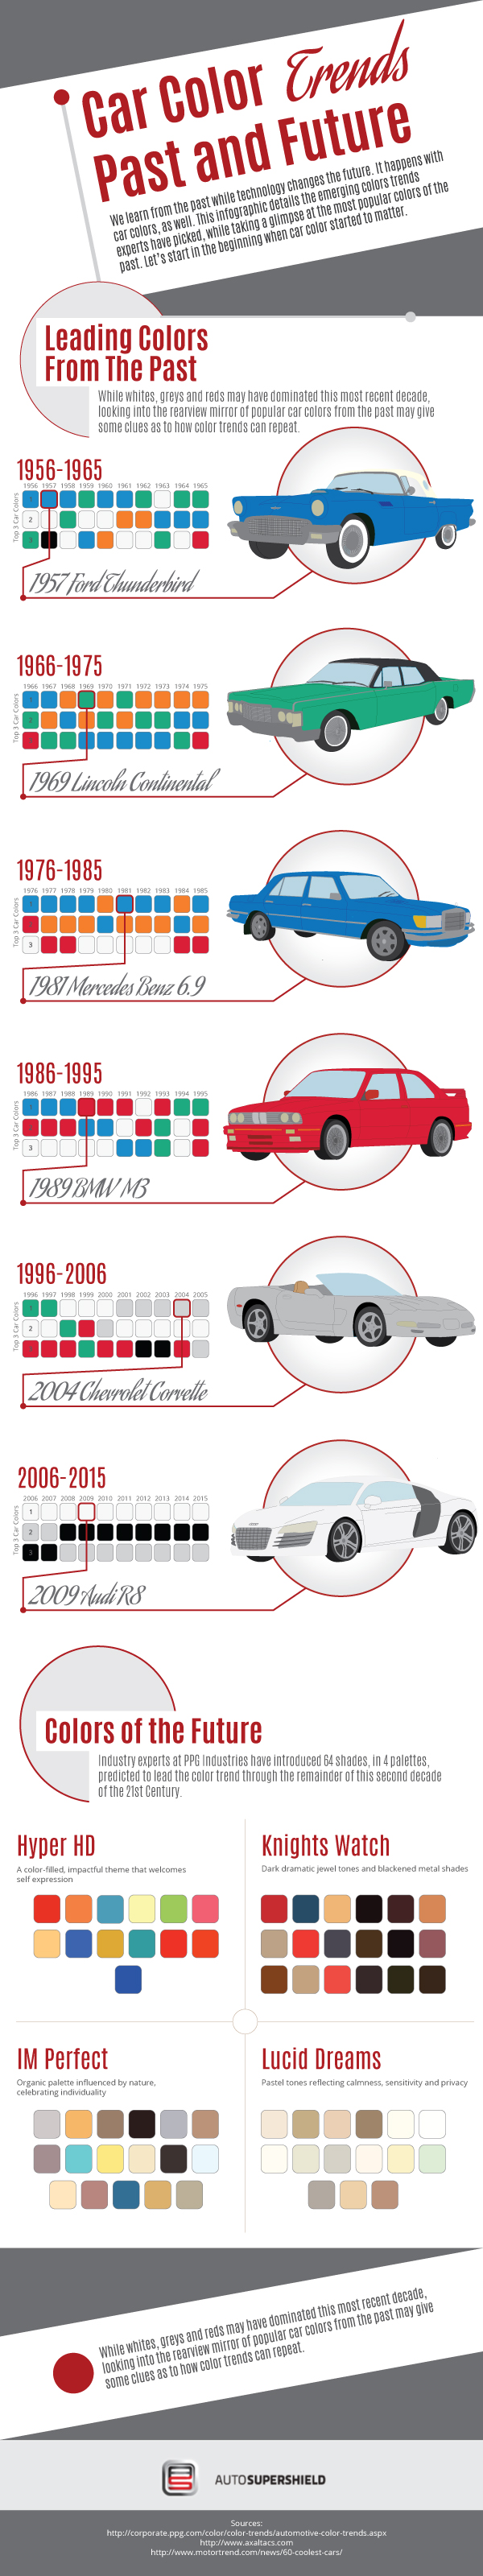 Most popular car colors 2015 - Most Popular Car Color For 2017 Old And Latest Trends Of Car Colors Infographic